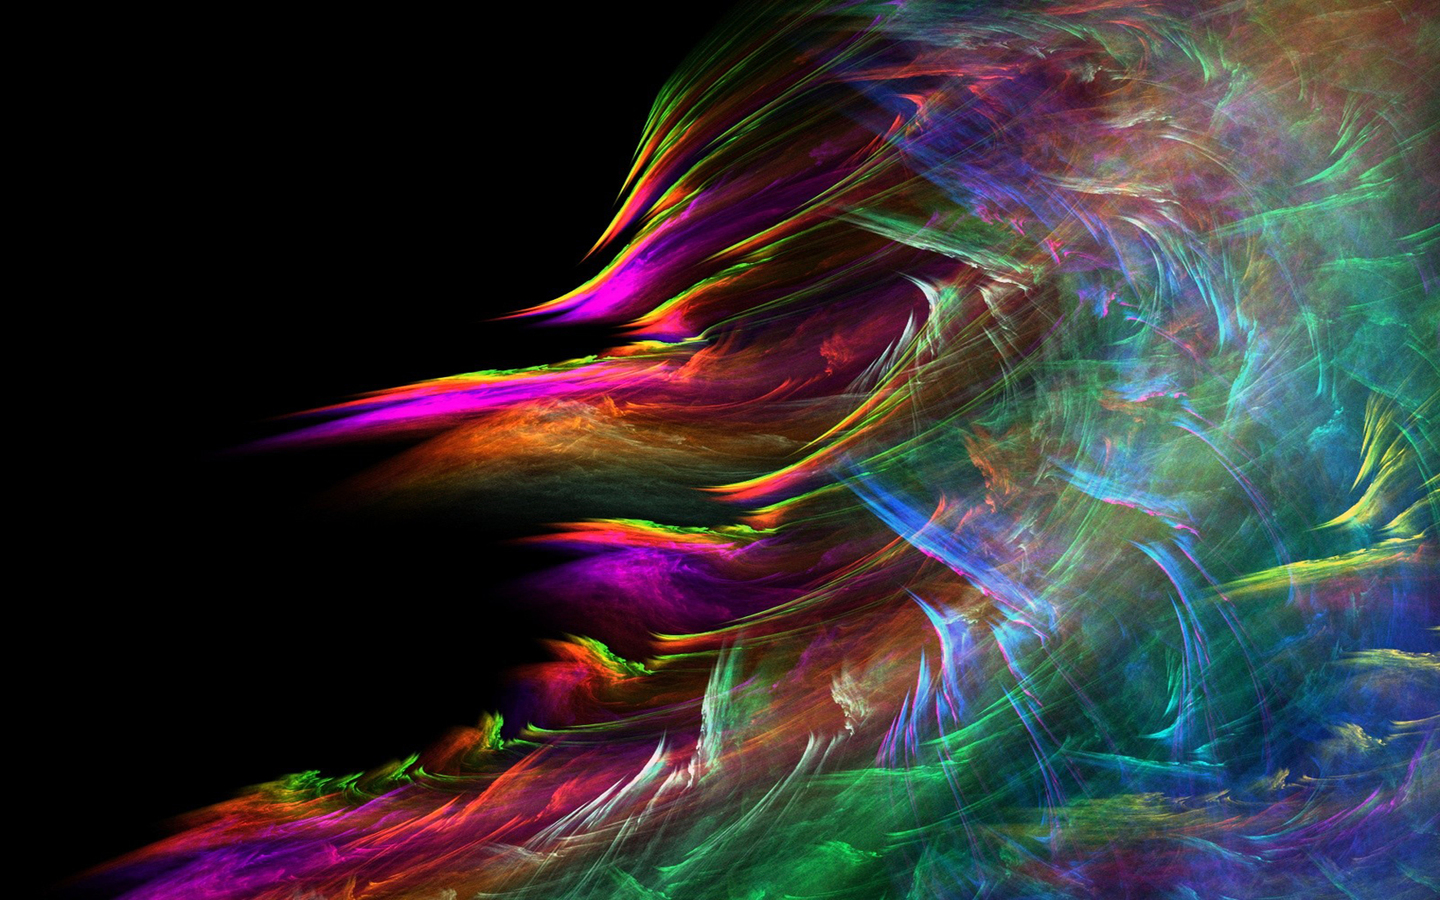 Colorful Abstract Desktop Backgrounds wallpaper wallpaper hd 1440x900